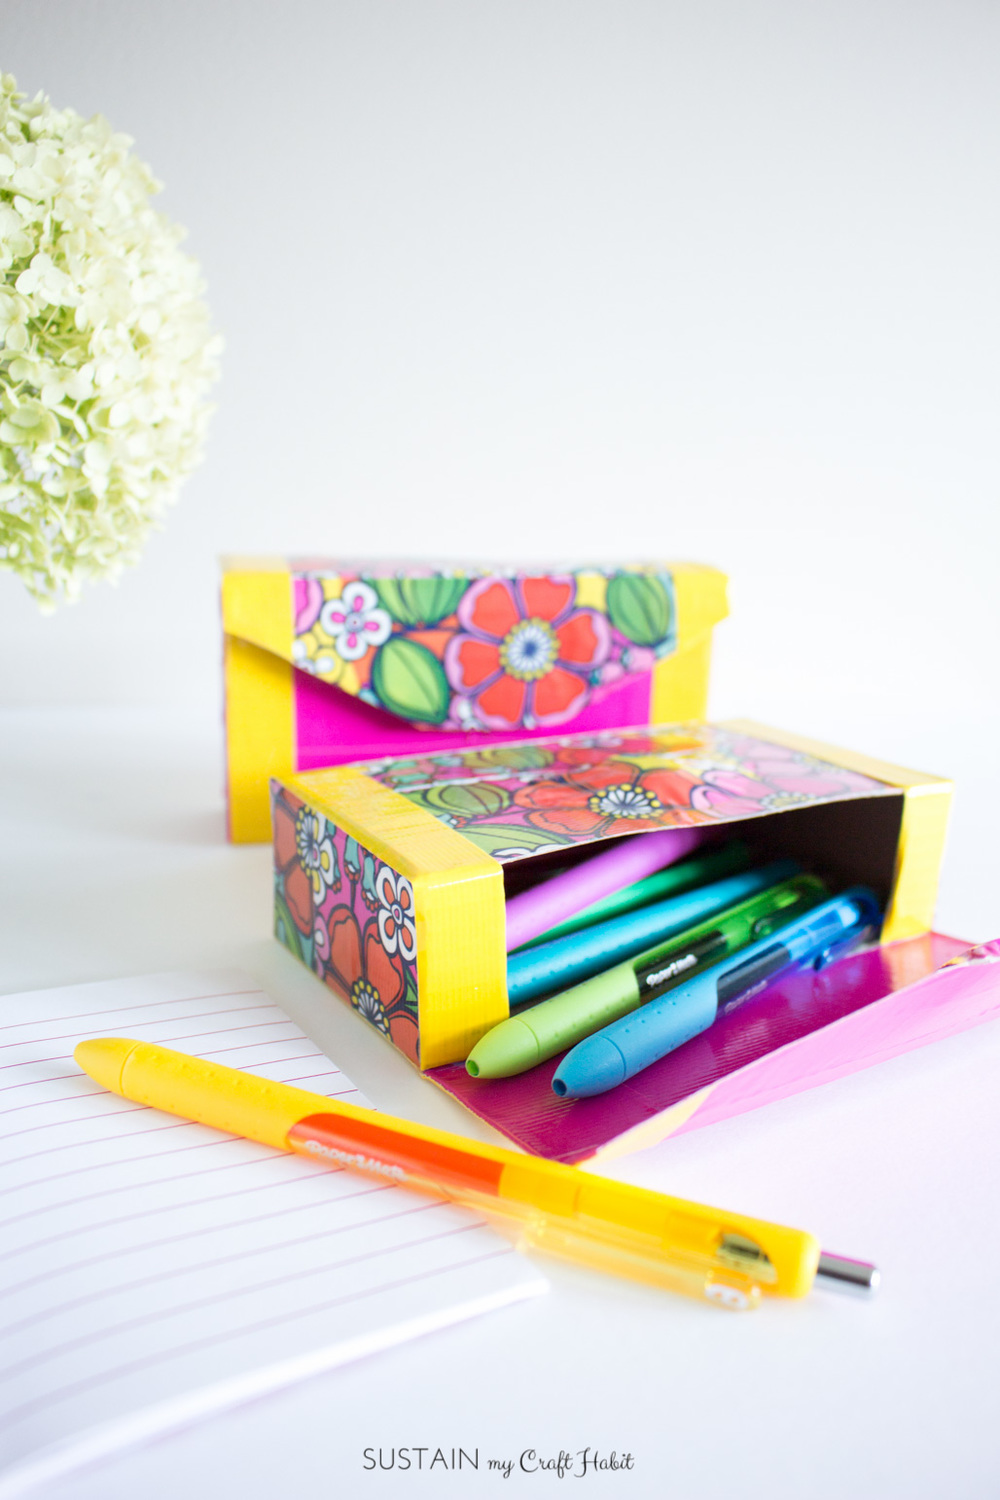 How to make your own bright and cheery pencil case with an empty cardboard snack box and Duck Tape! So many color combo possibilities!